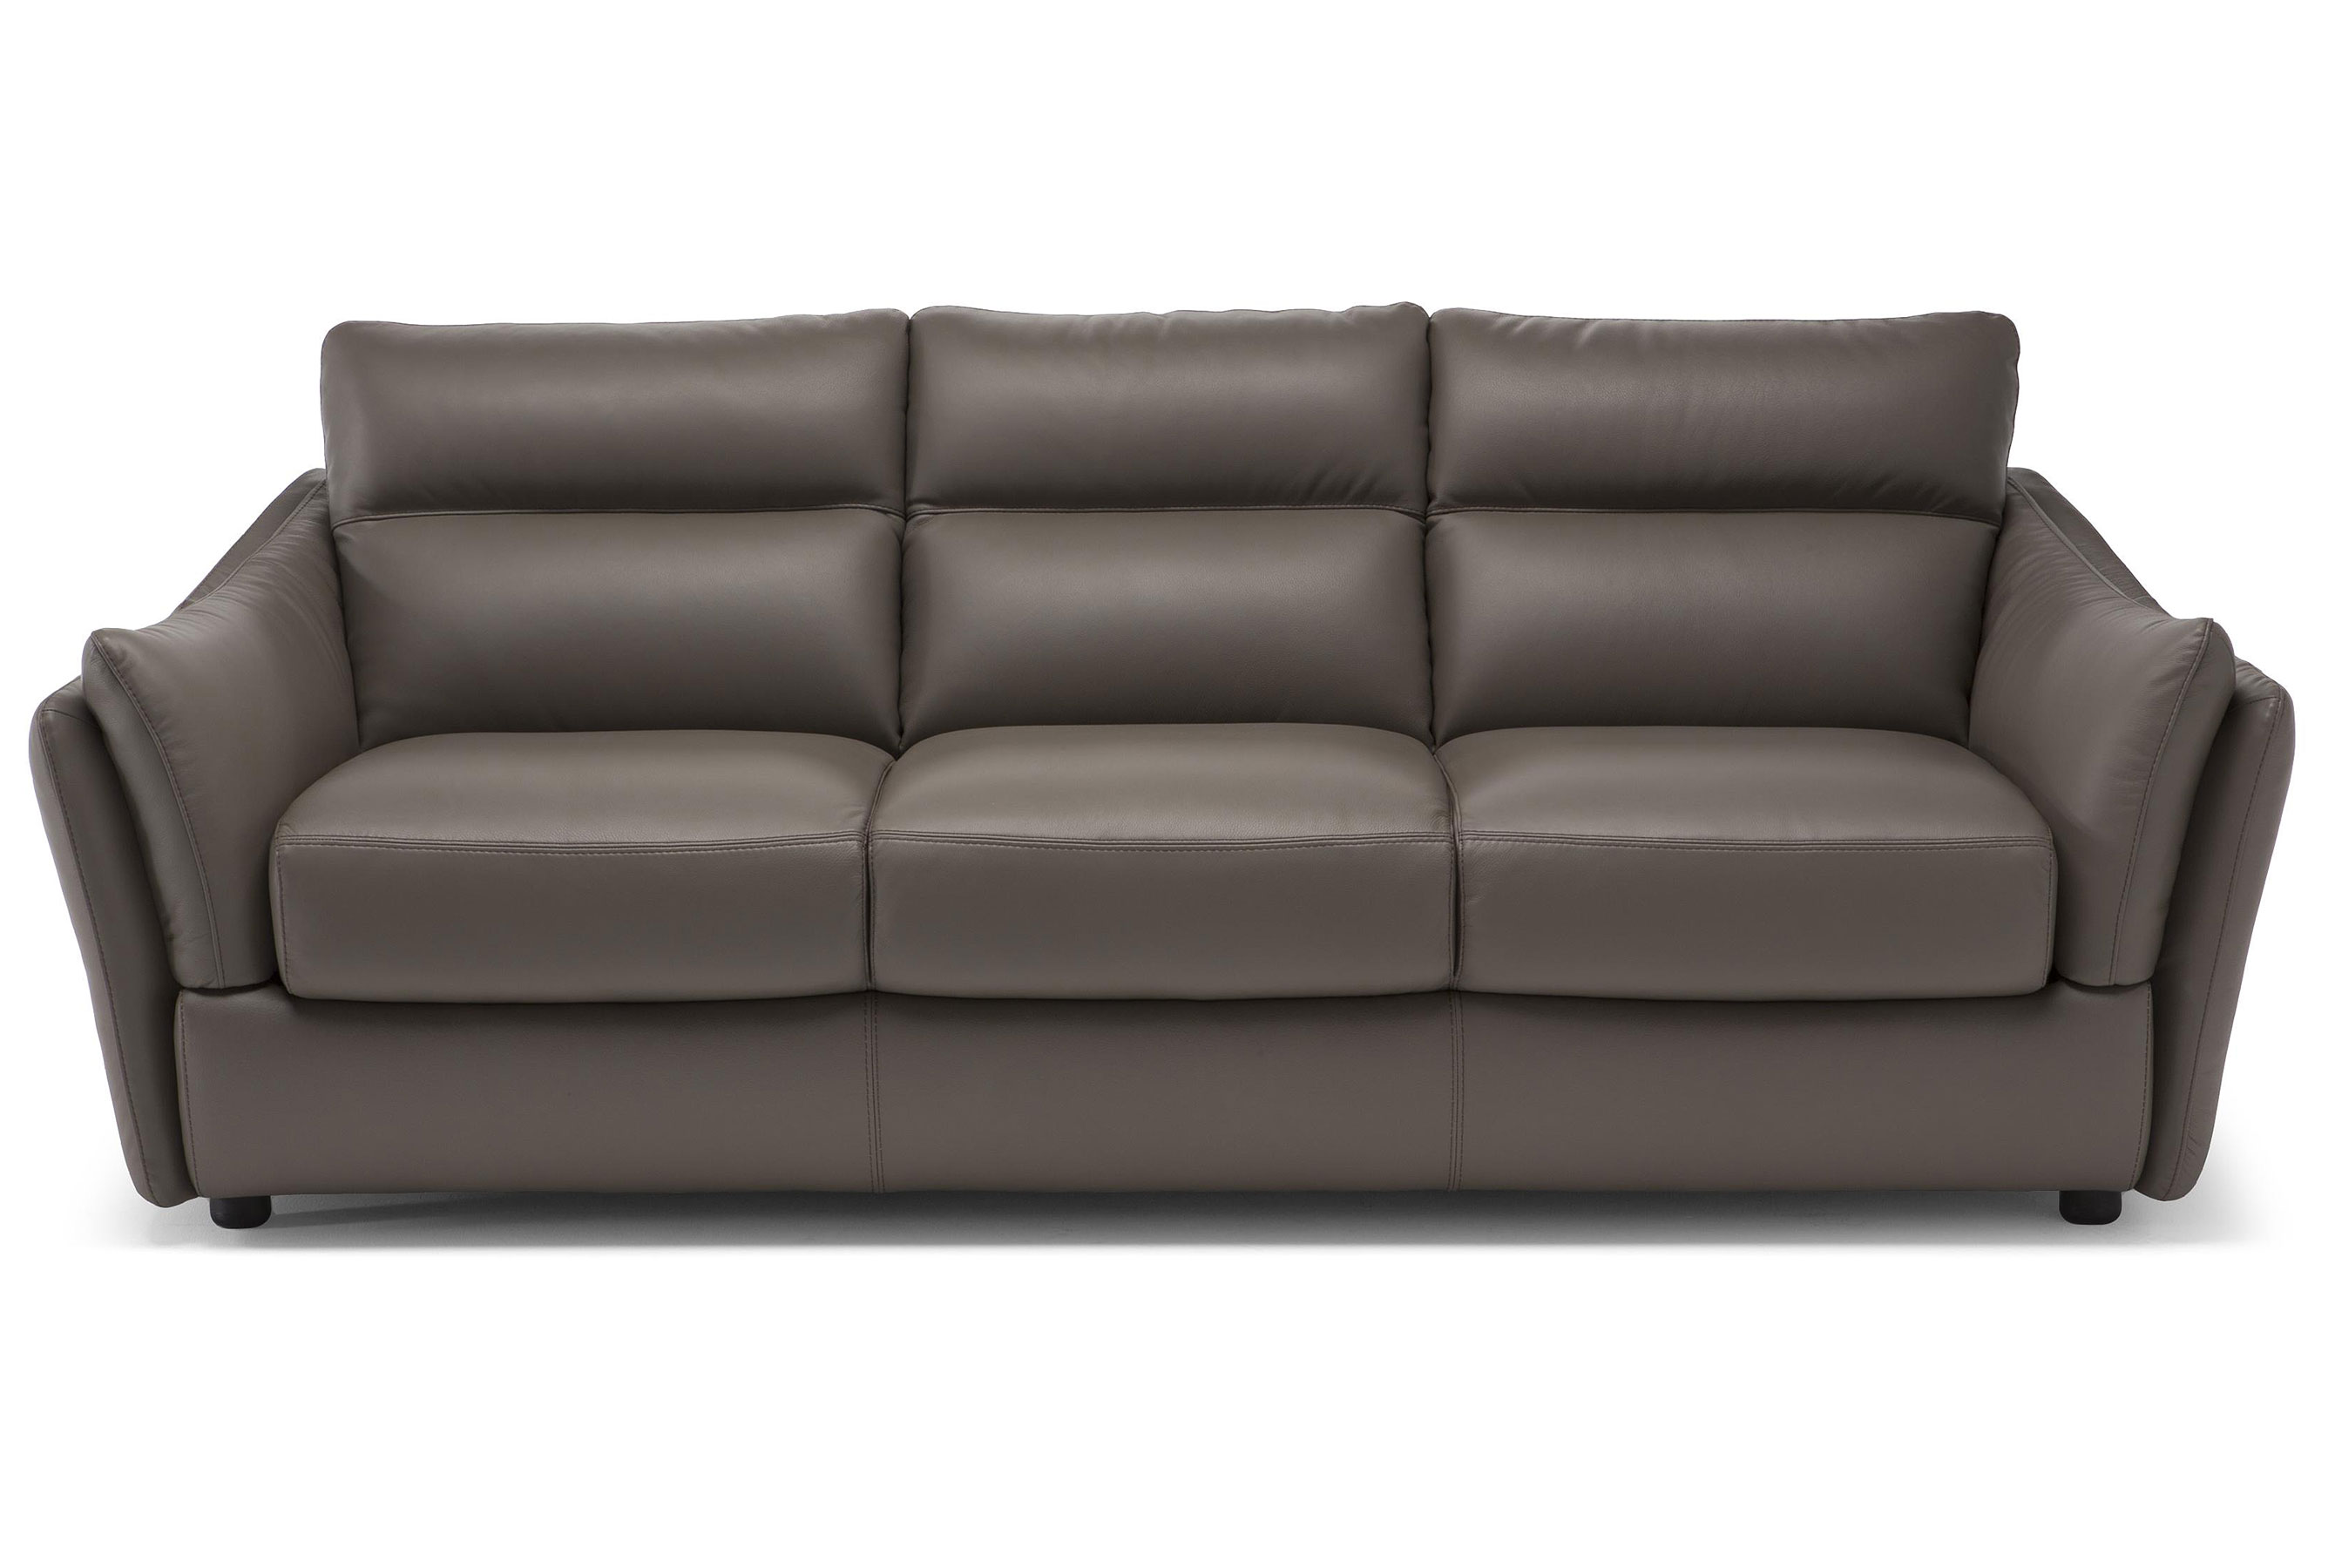 furniture and affetto natuzzi top leather sofas original sofa editions brands sectionals sectional by grain